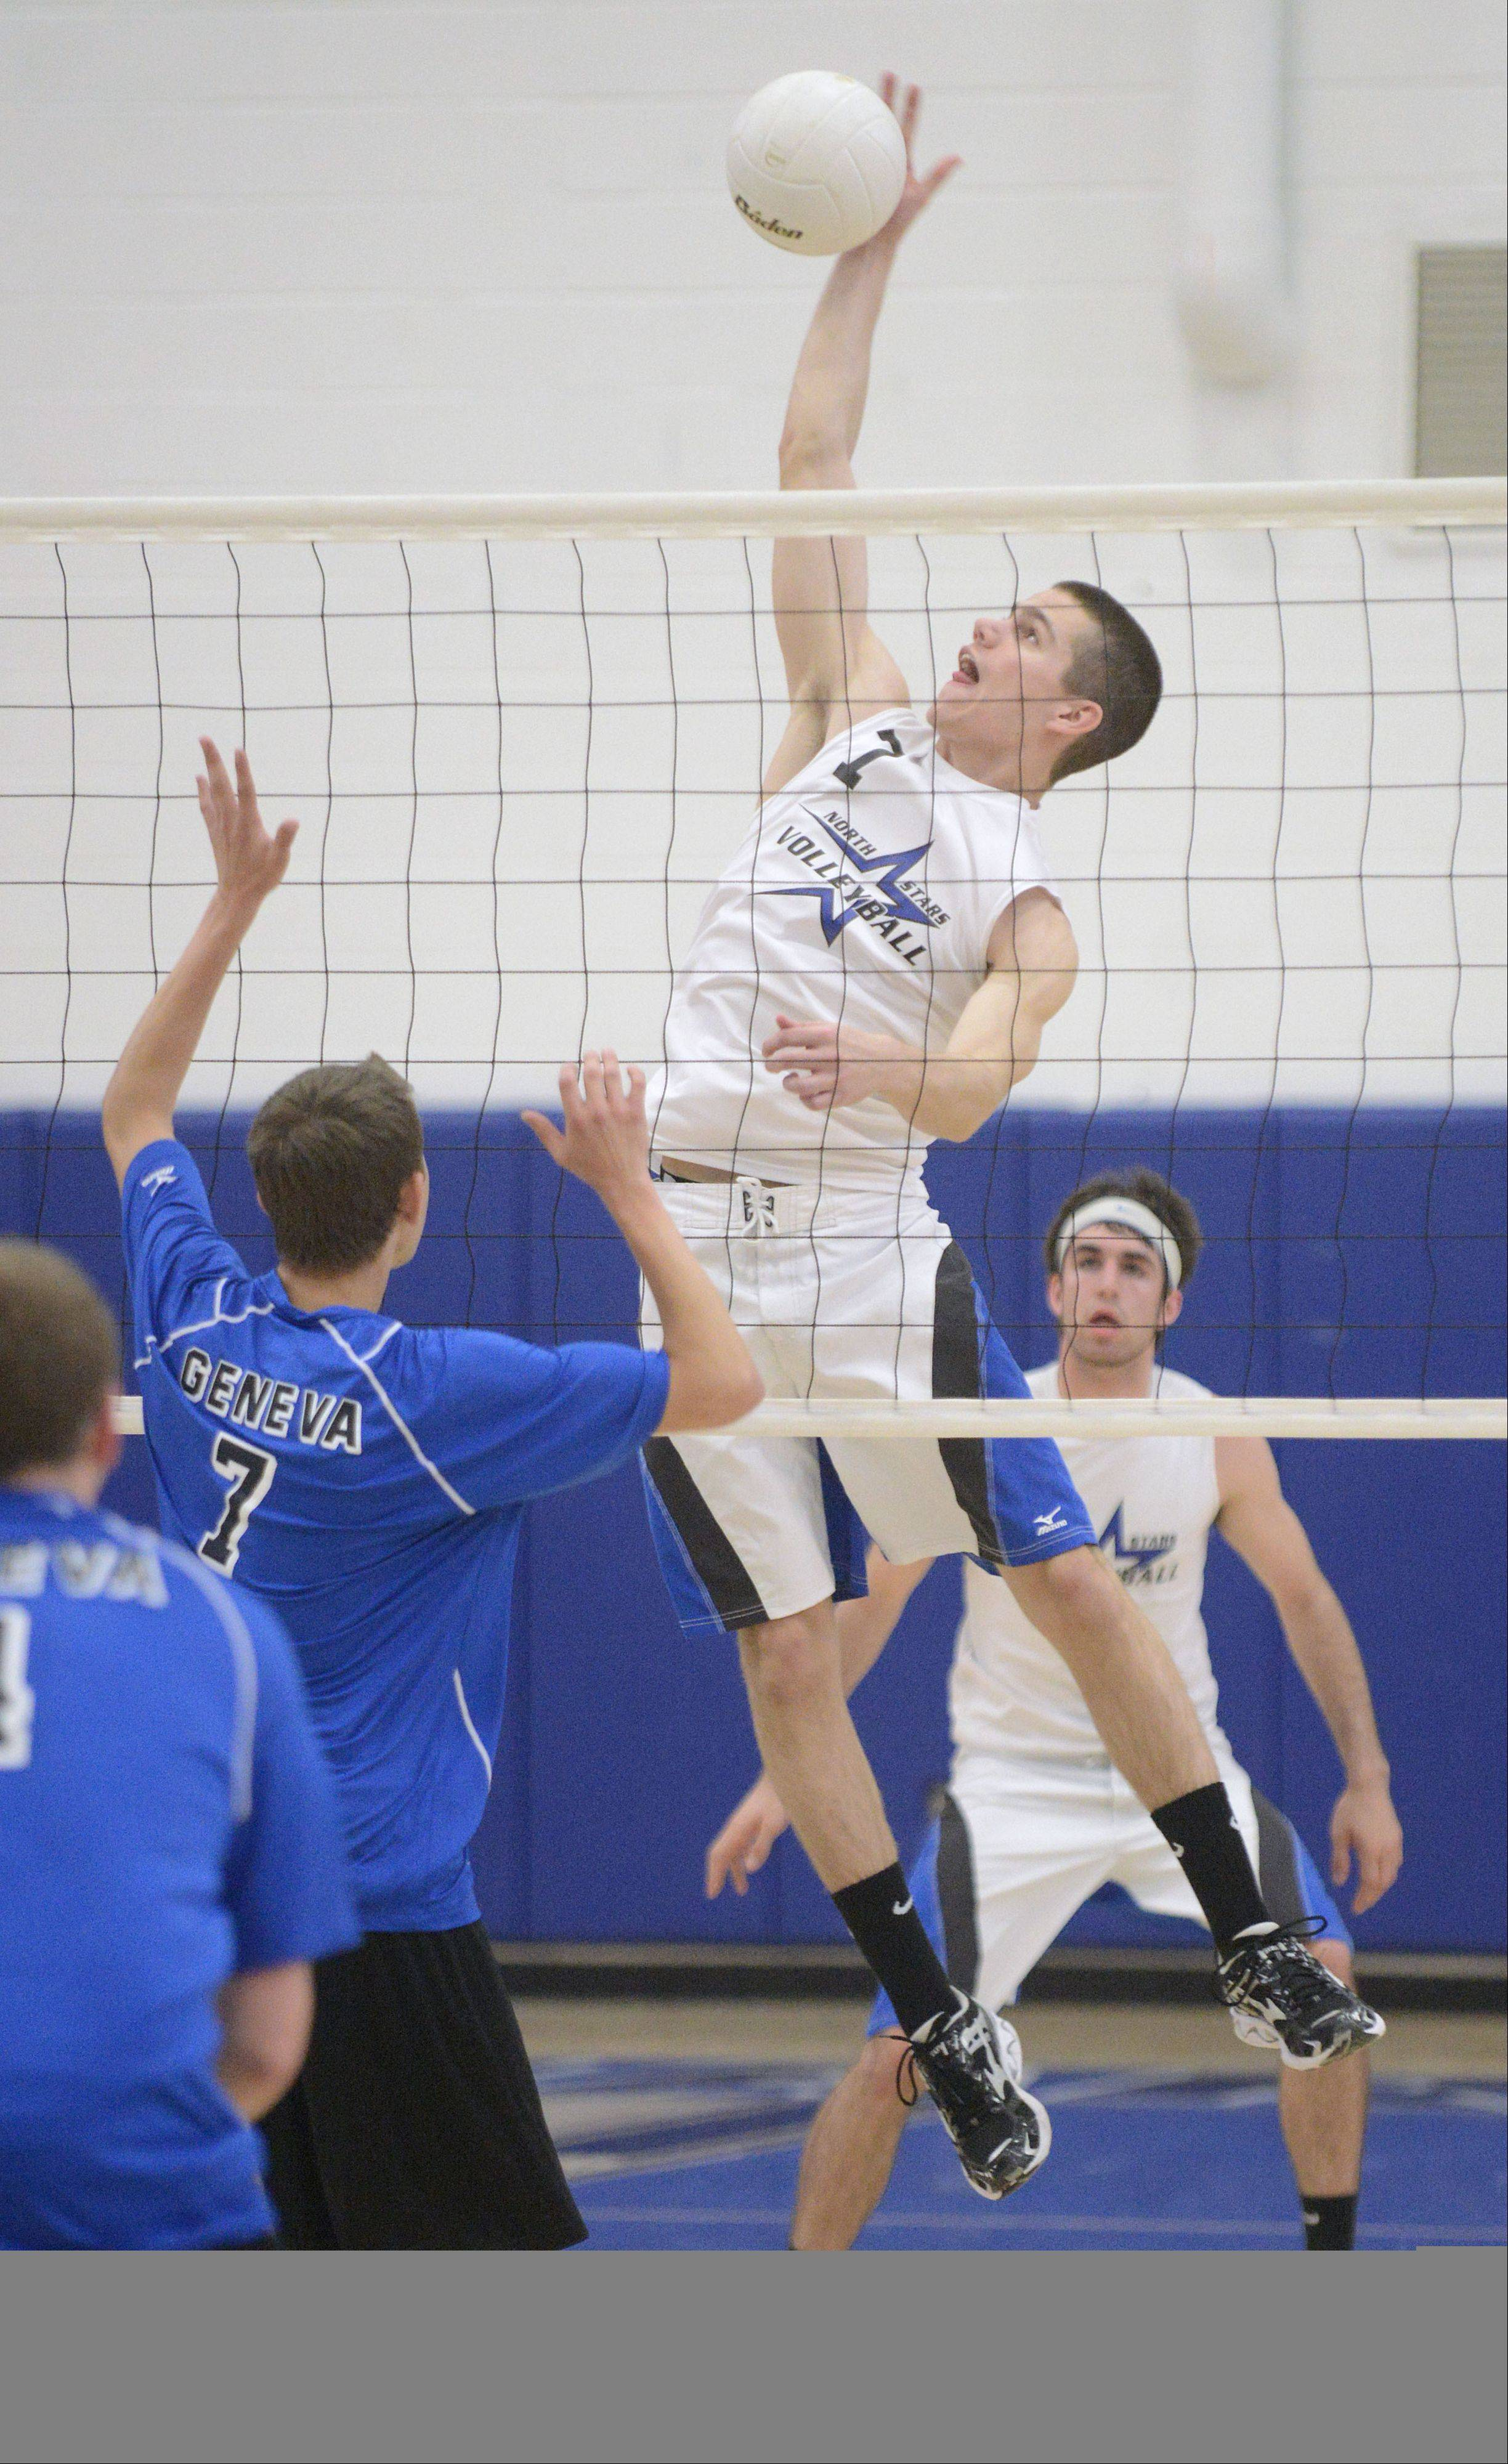 St. Charles North's Zach Ziesmer spikes the ball over the net towards Geneva's Dominic Bondi in the first match on Tuesday, May 7.